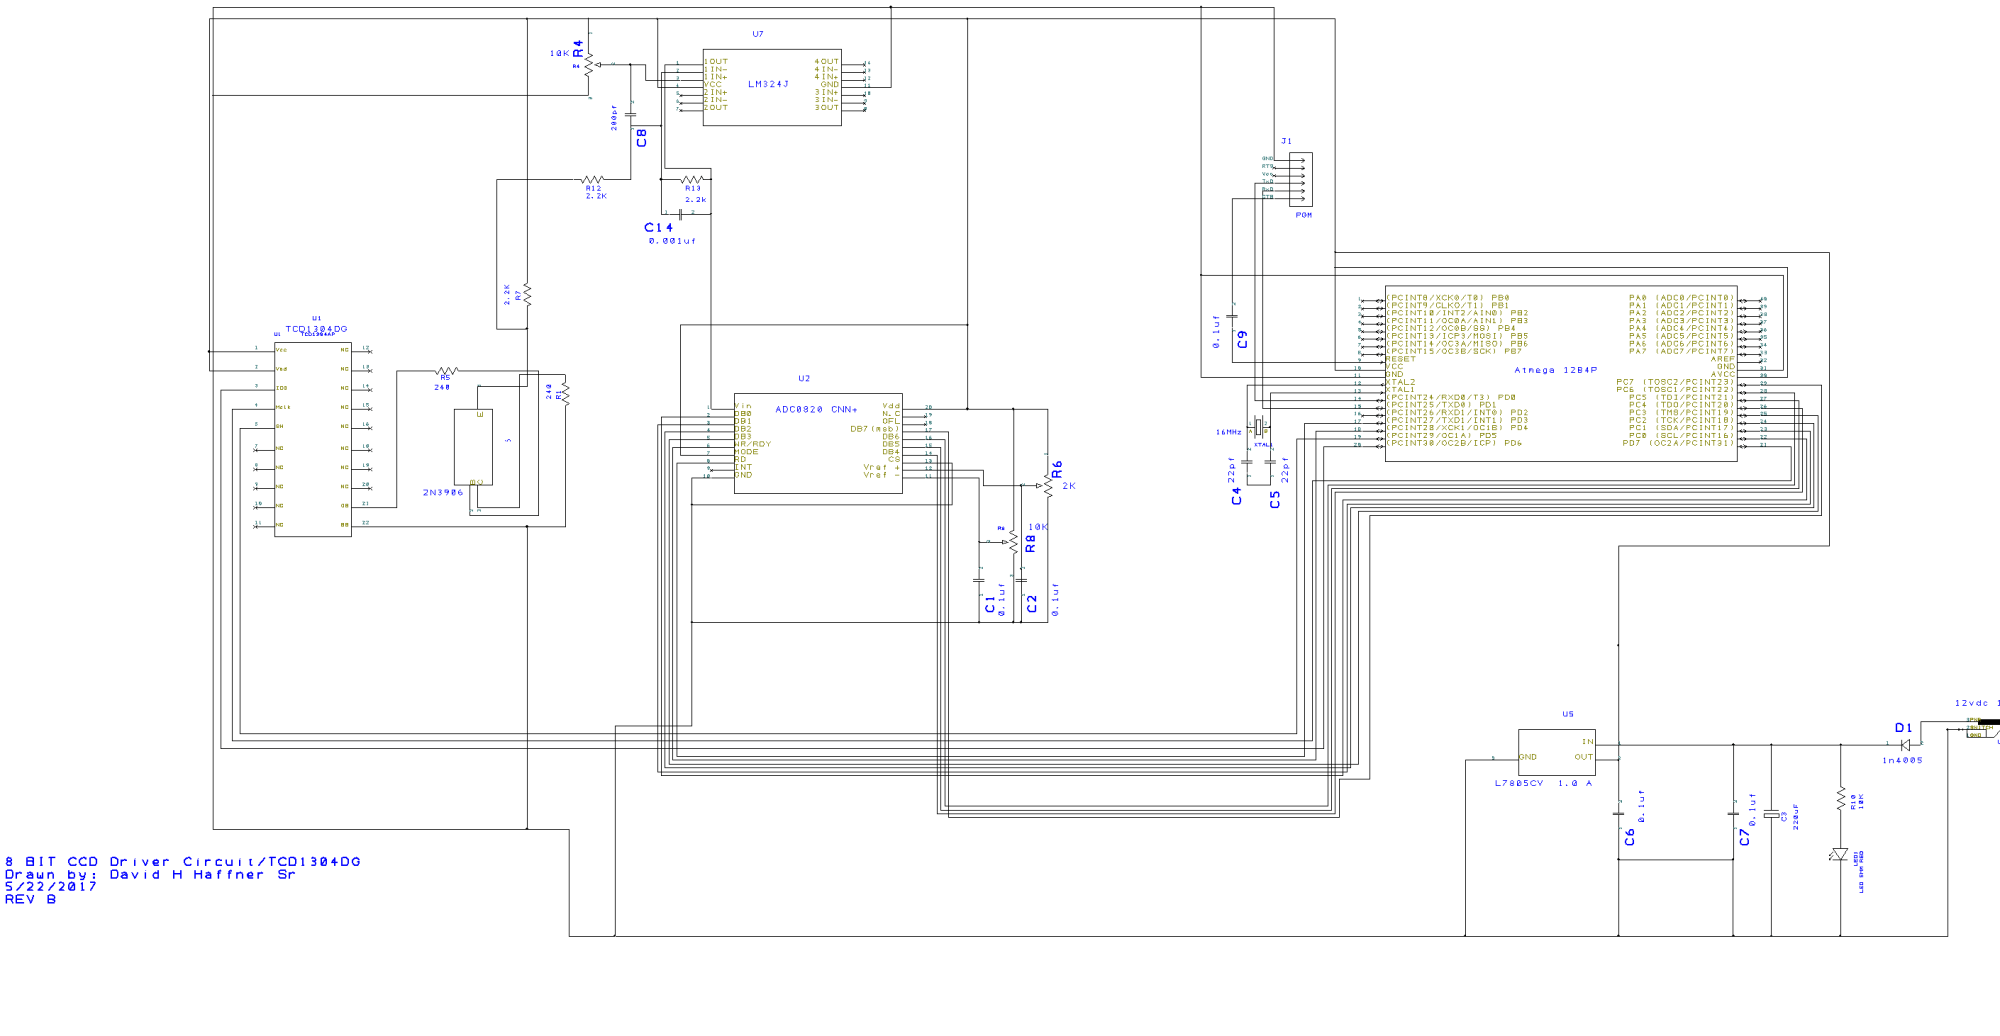 hight resolution of it was brought to my attention today that there may be some signaling and grounding problems with this design and pcb well i cannot see them